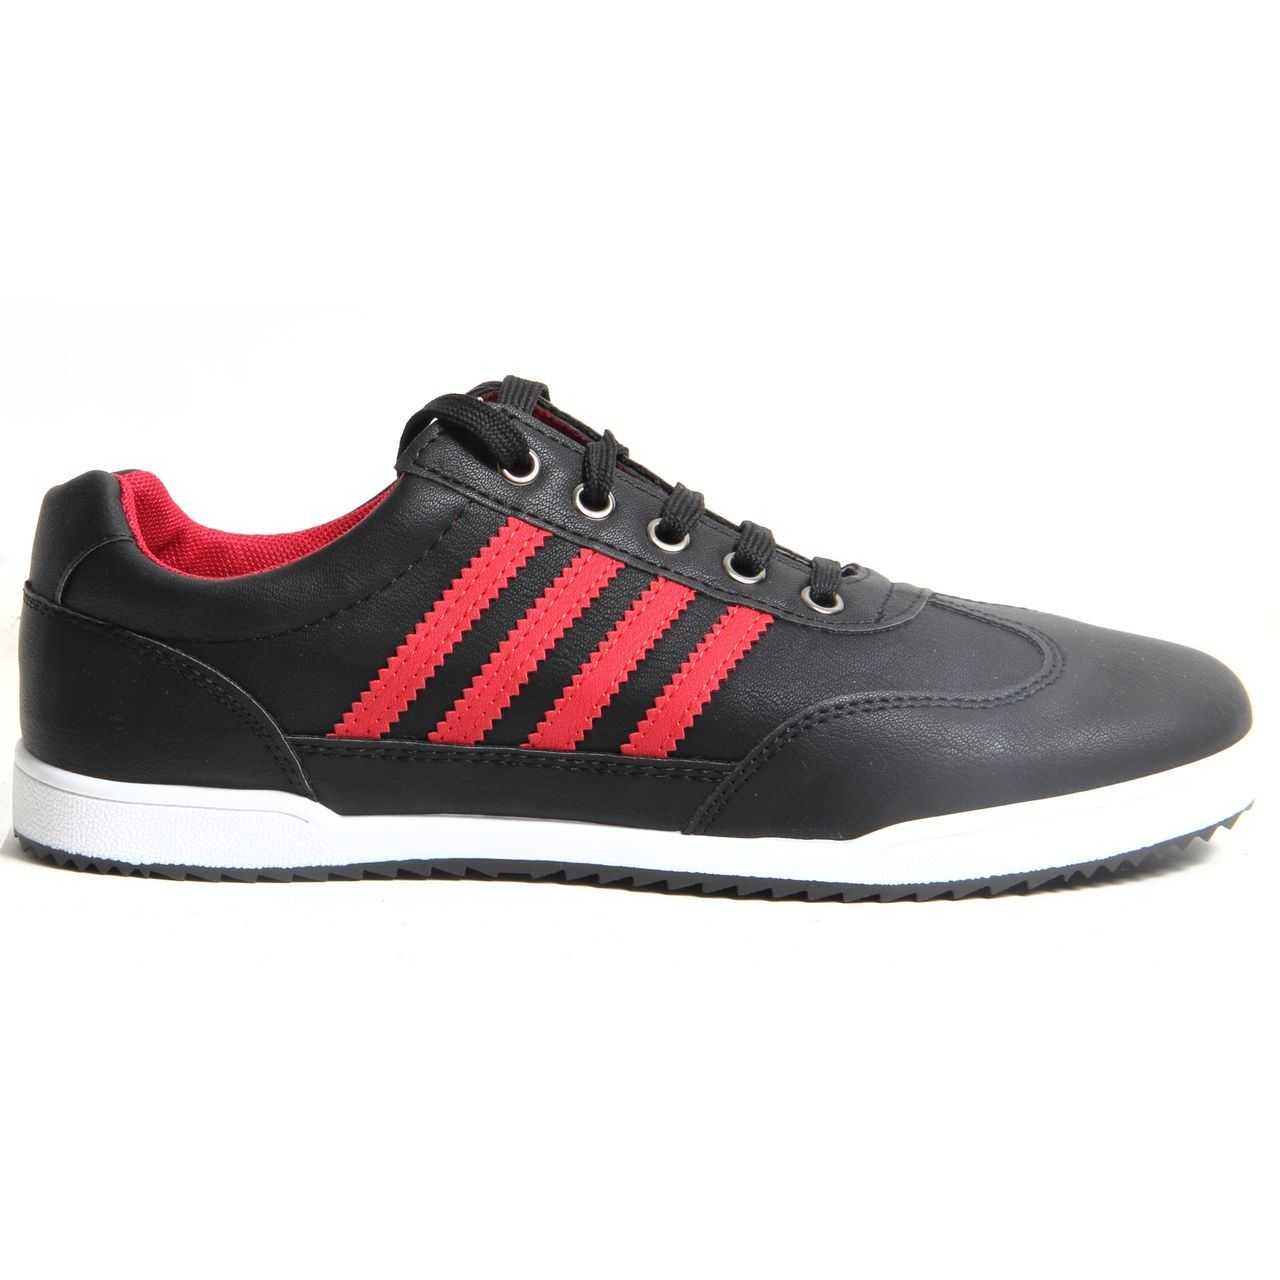 Mens Flat Soled Tennis Shoes